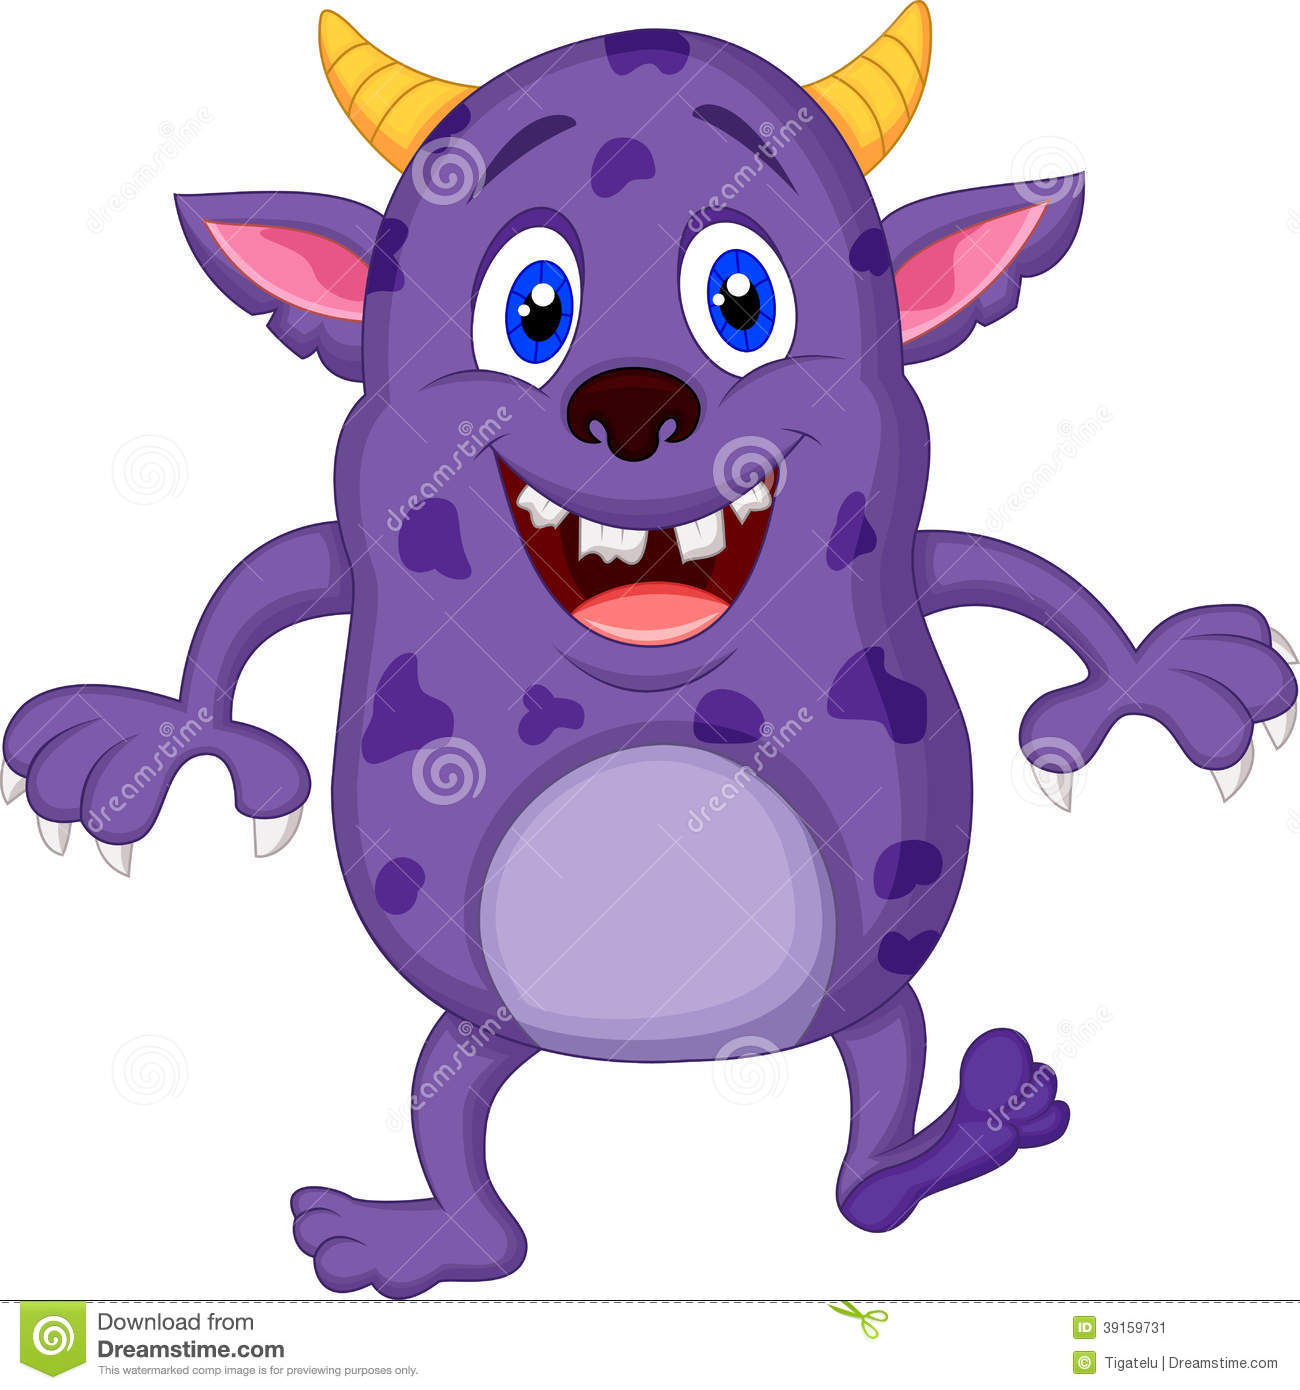 Cute Monster Cartoon Stock Vector - Image: 39159731